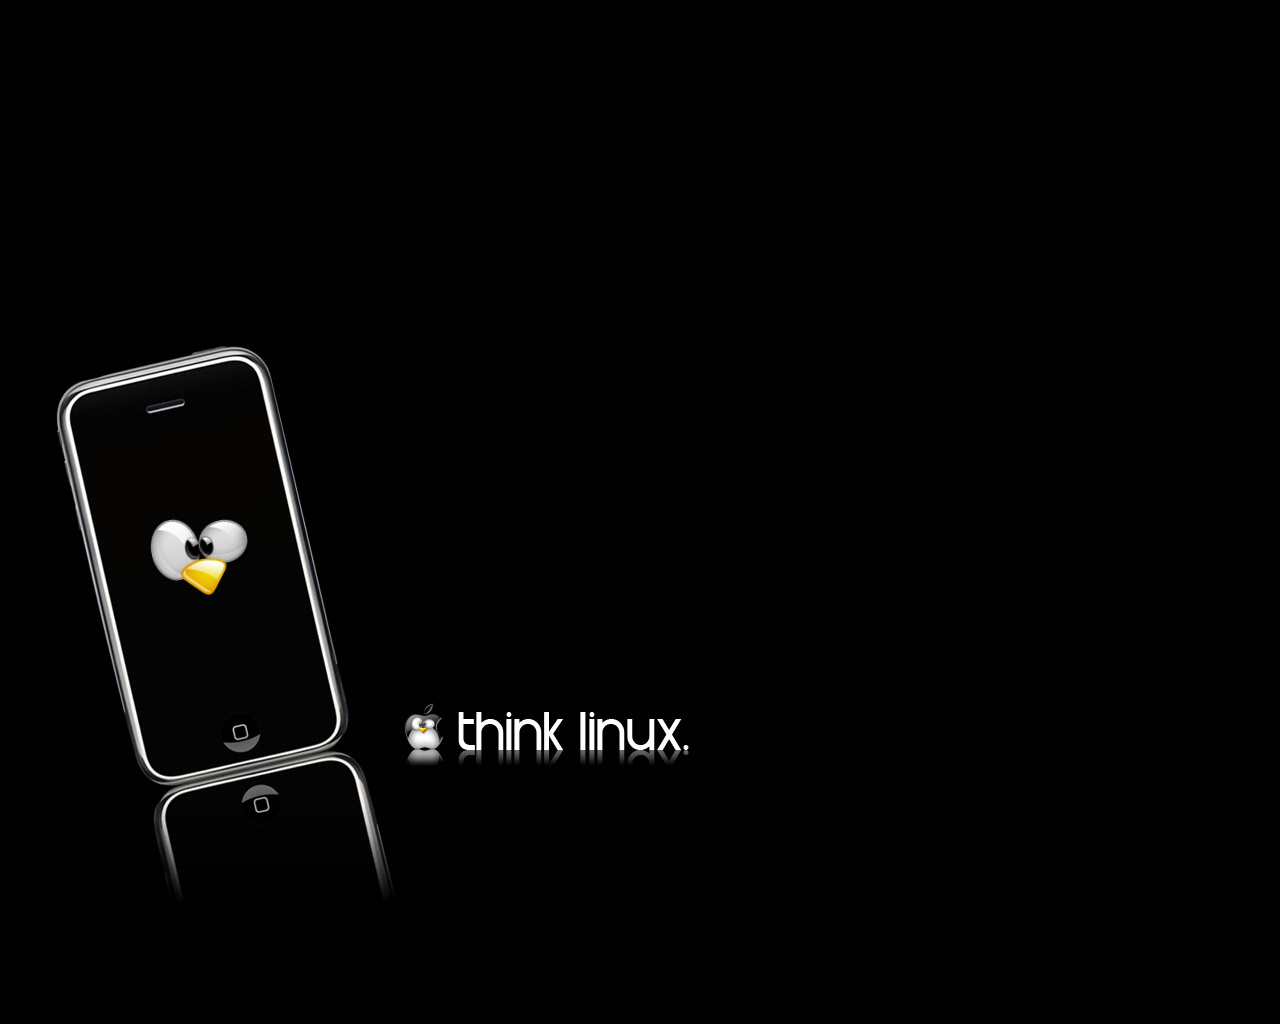 think linux wallpaper - photo #8